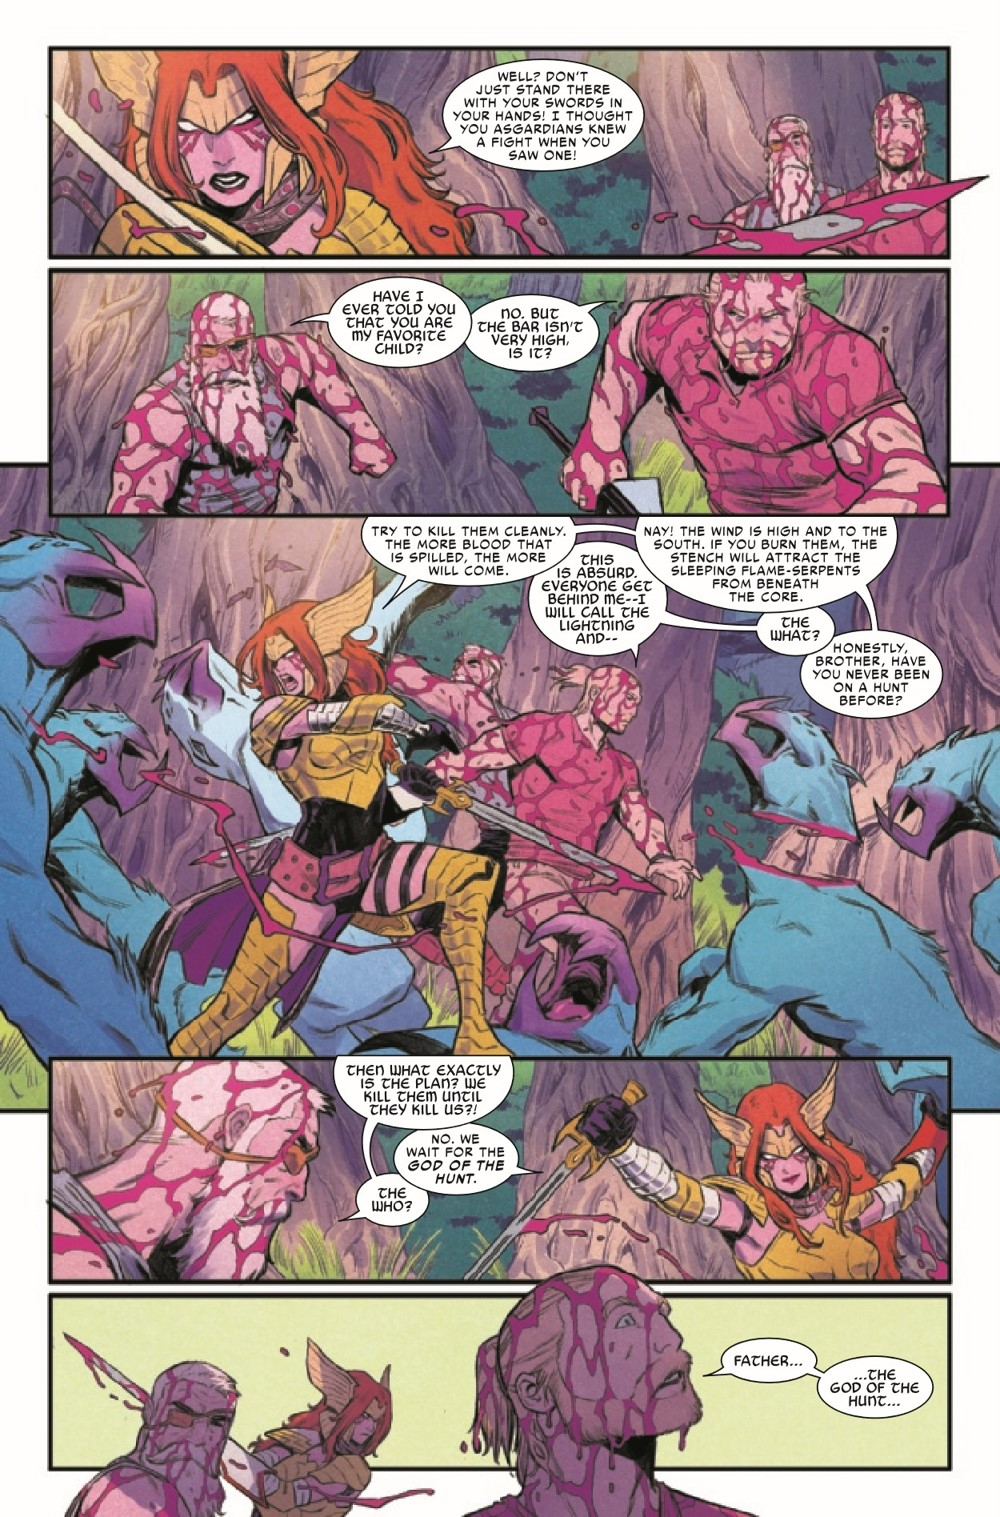 THOR2020017_Preview-5 ComicList Previews: THOR #17